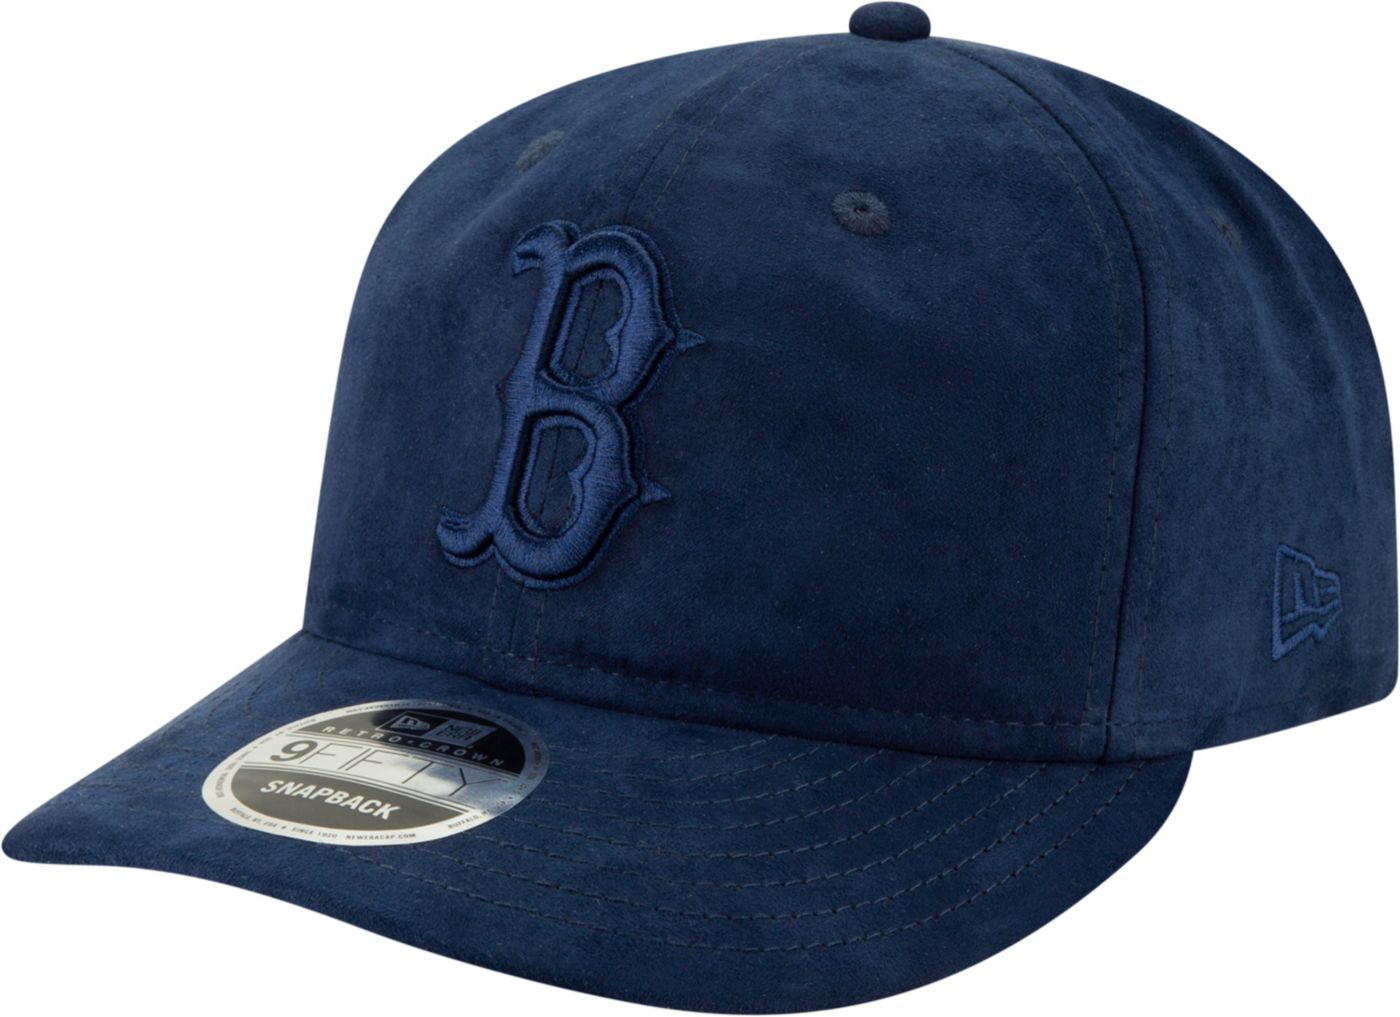 New Era Men's Boston Red Sox 9Fifty Suede Retro Navy Adjustable Snapback Hat